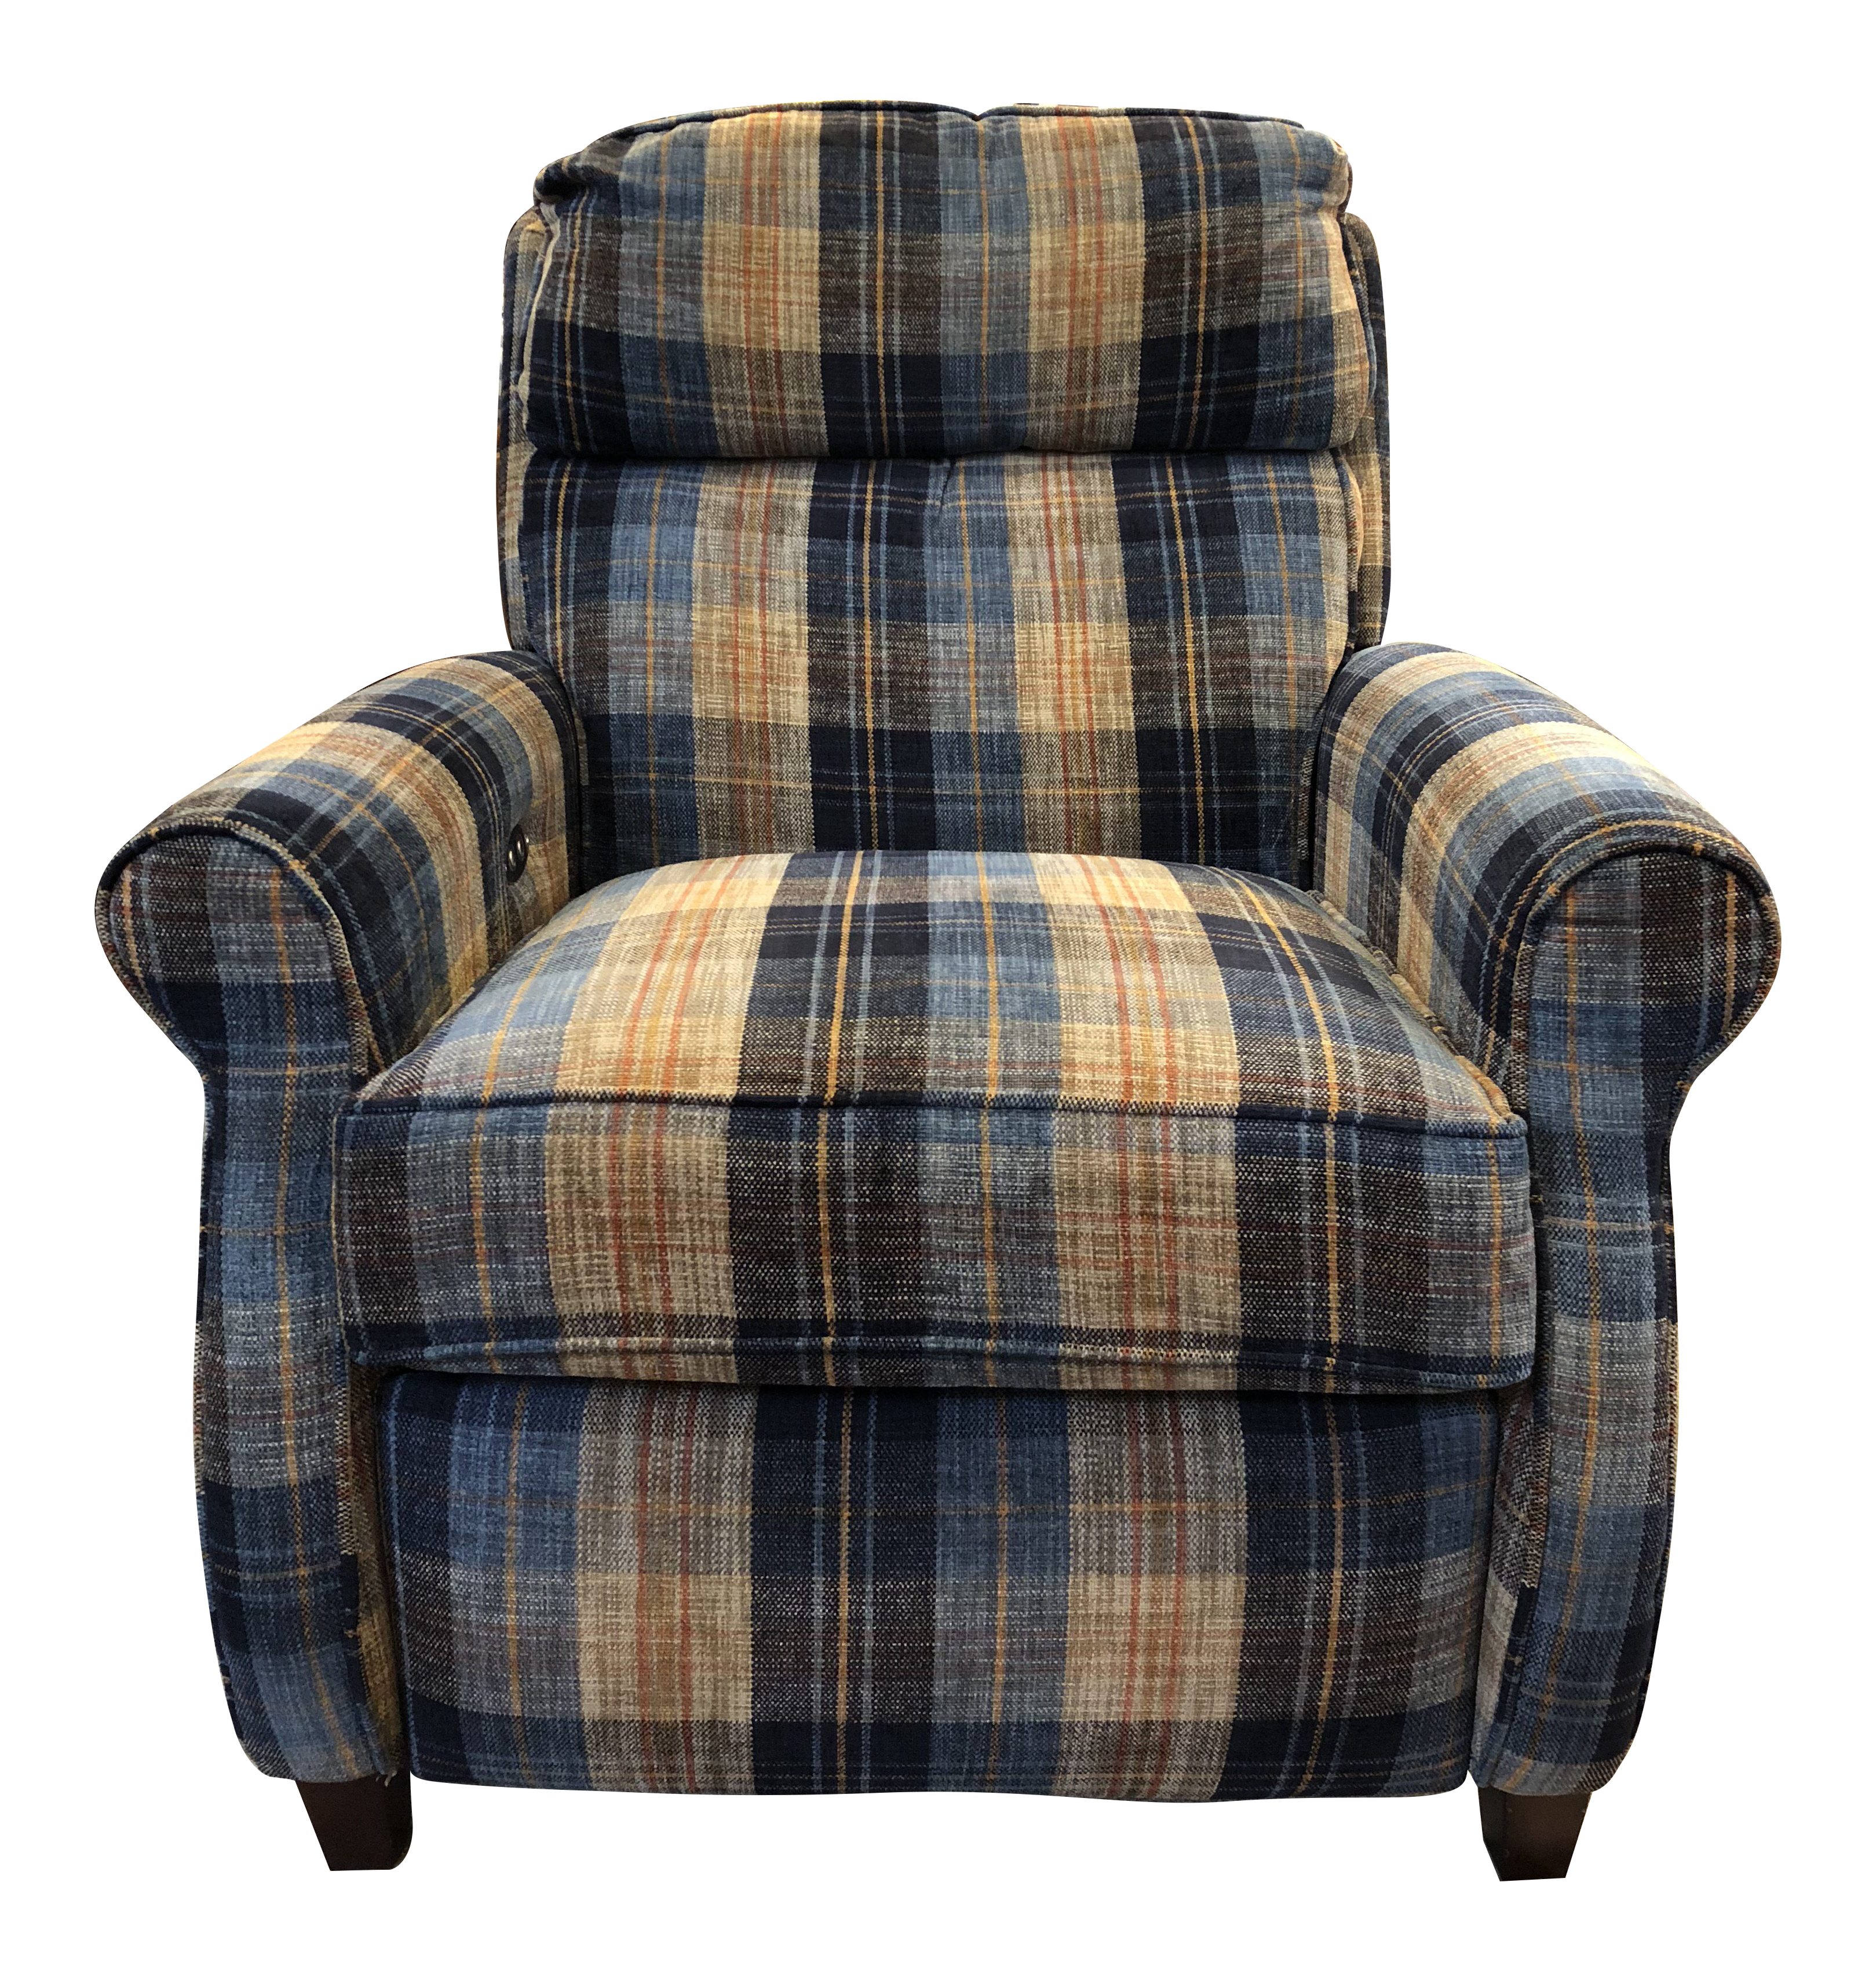 Comfort Designs Leslie Plaid Upholstered Armchair   Electric Recliner